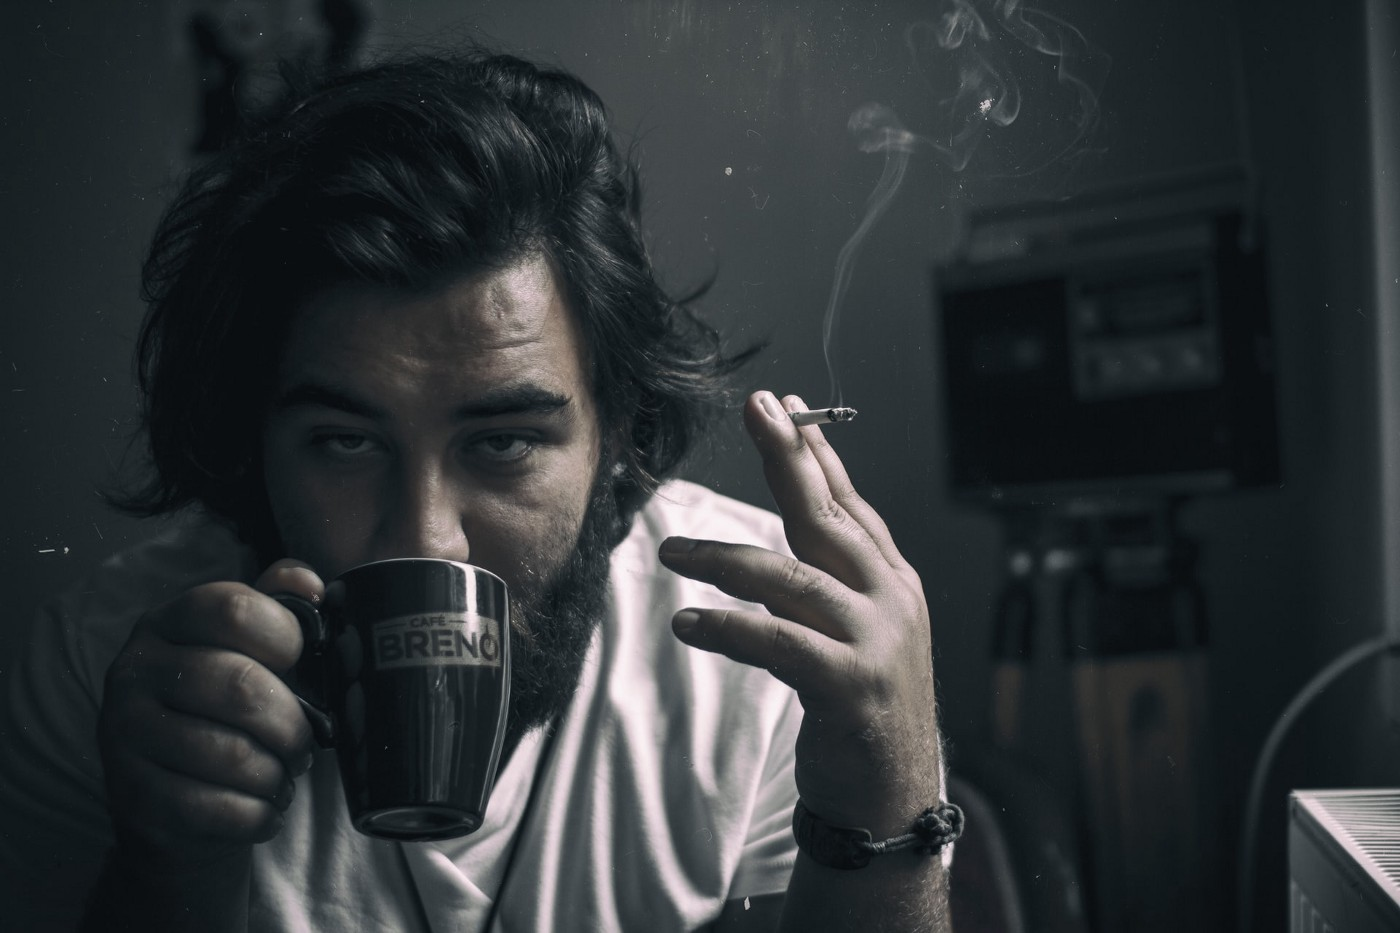 A man drinking coffee while smoking a cigarette